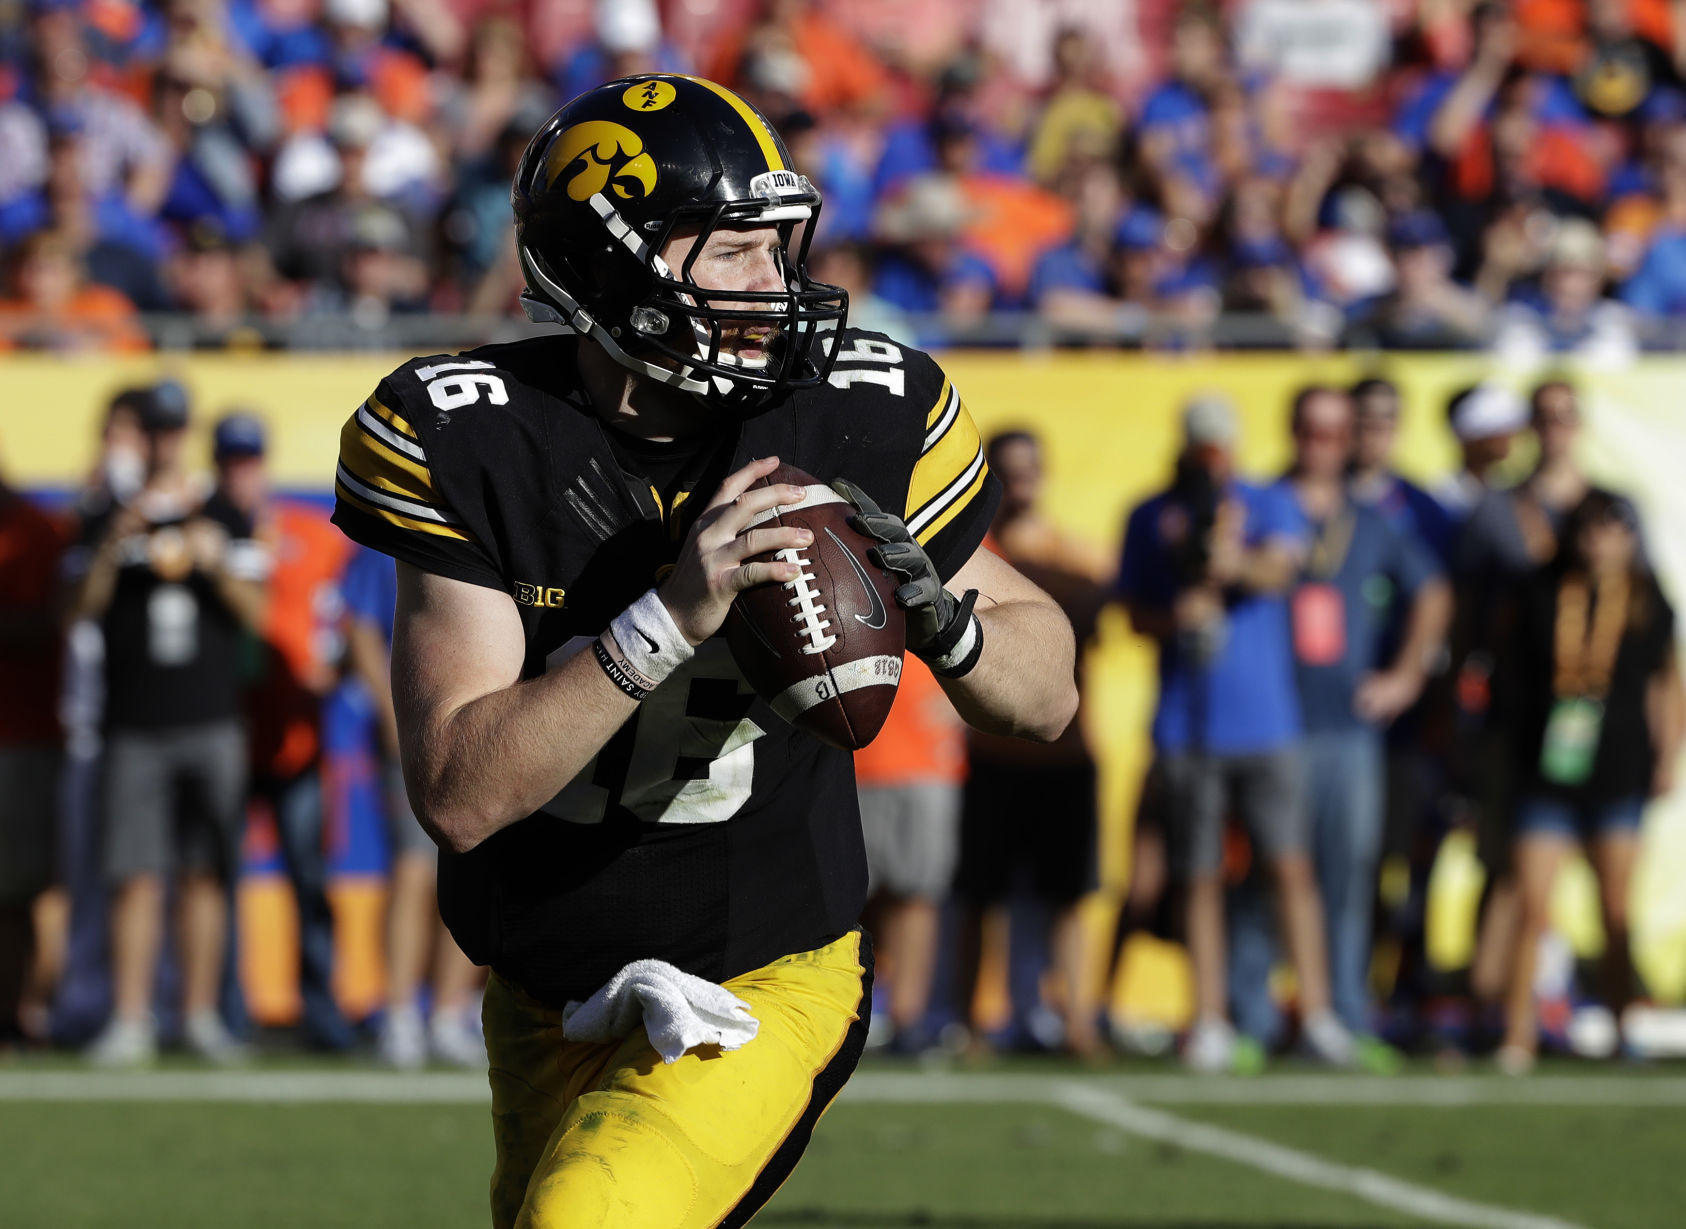 Outback Bowl Football Beathard surprises is first